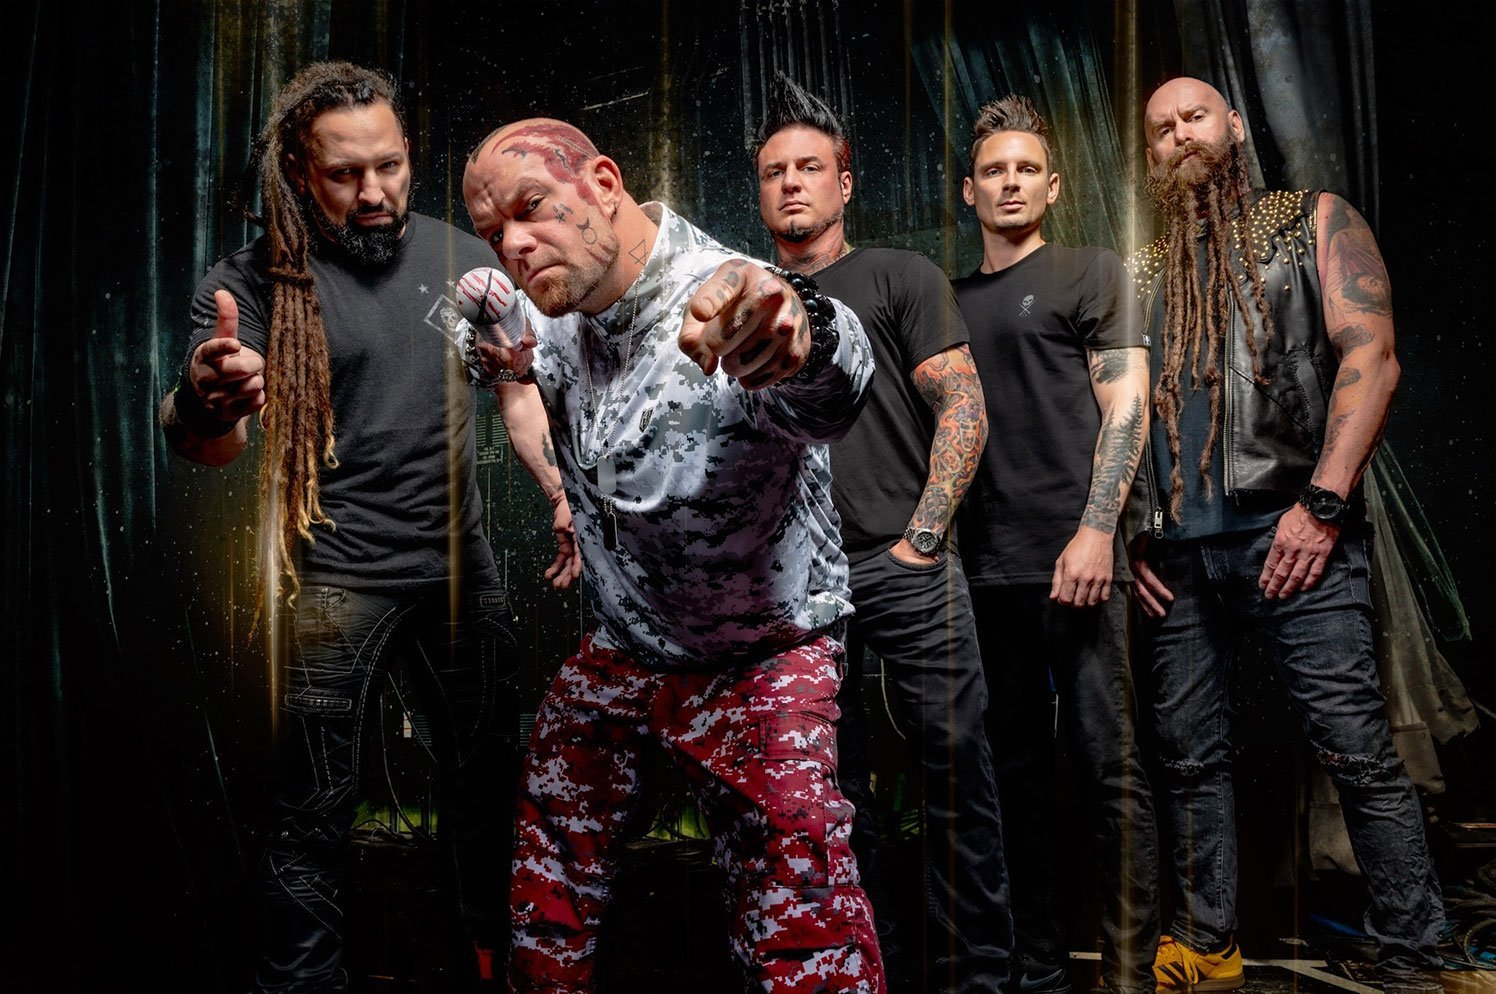 Five Finger Death Punch, Papa Roach, I Prevail & Ice Nine Kills [CANCELLED] at Red Rocks Amphitheater